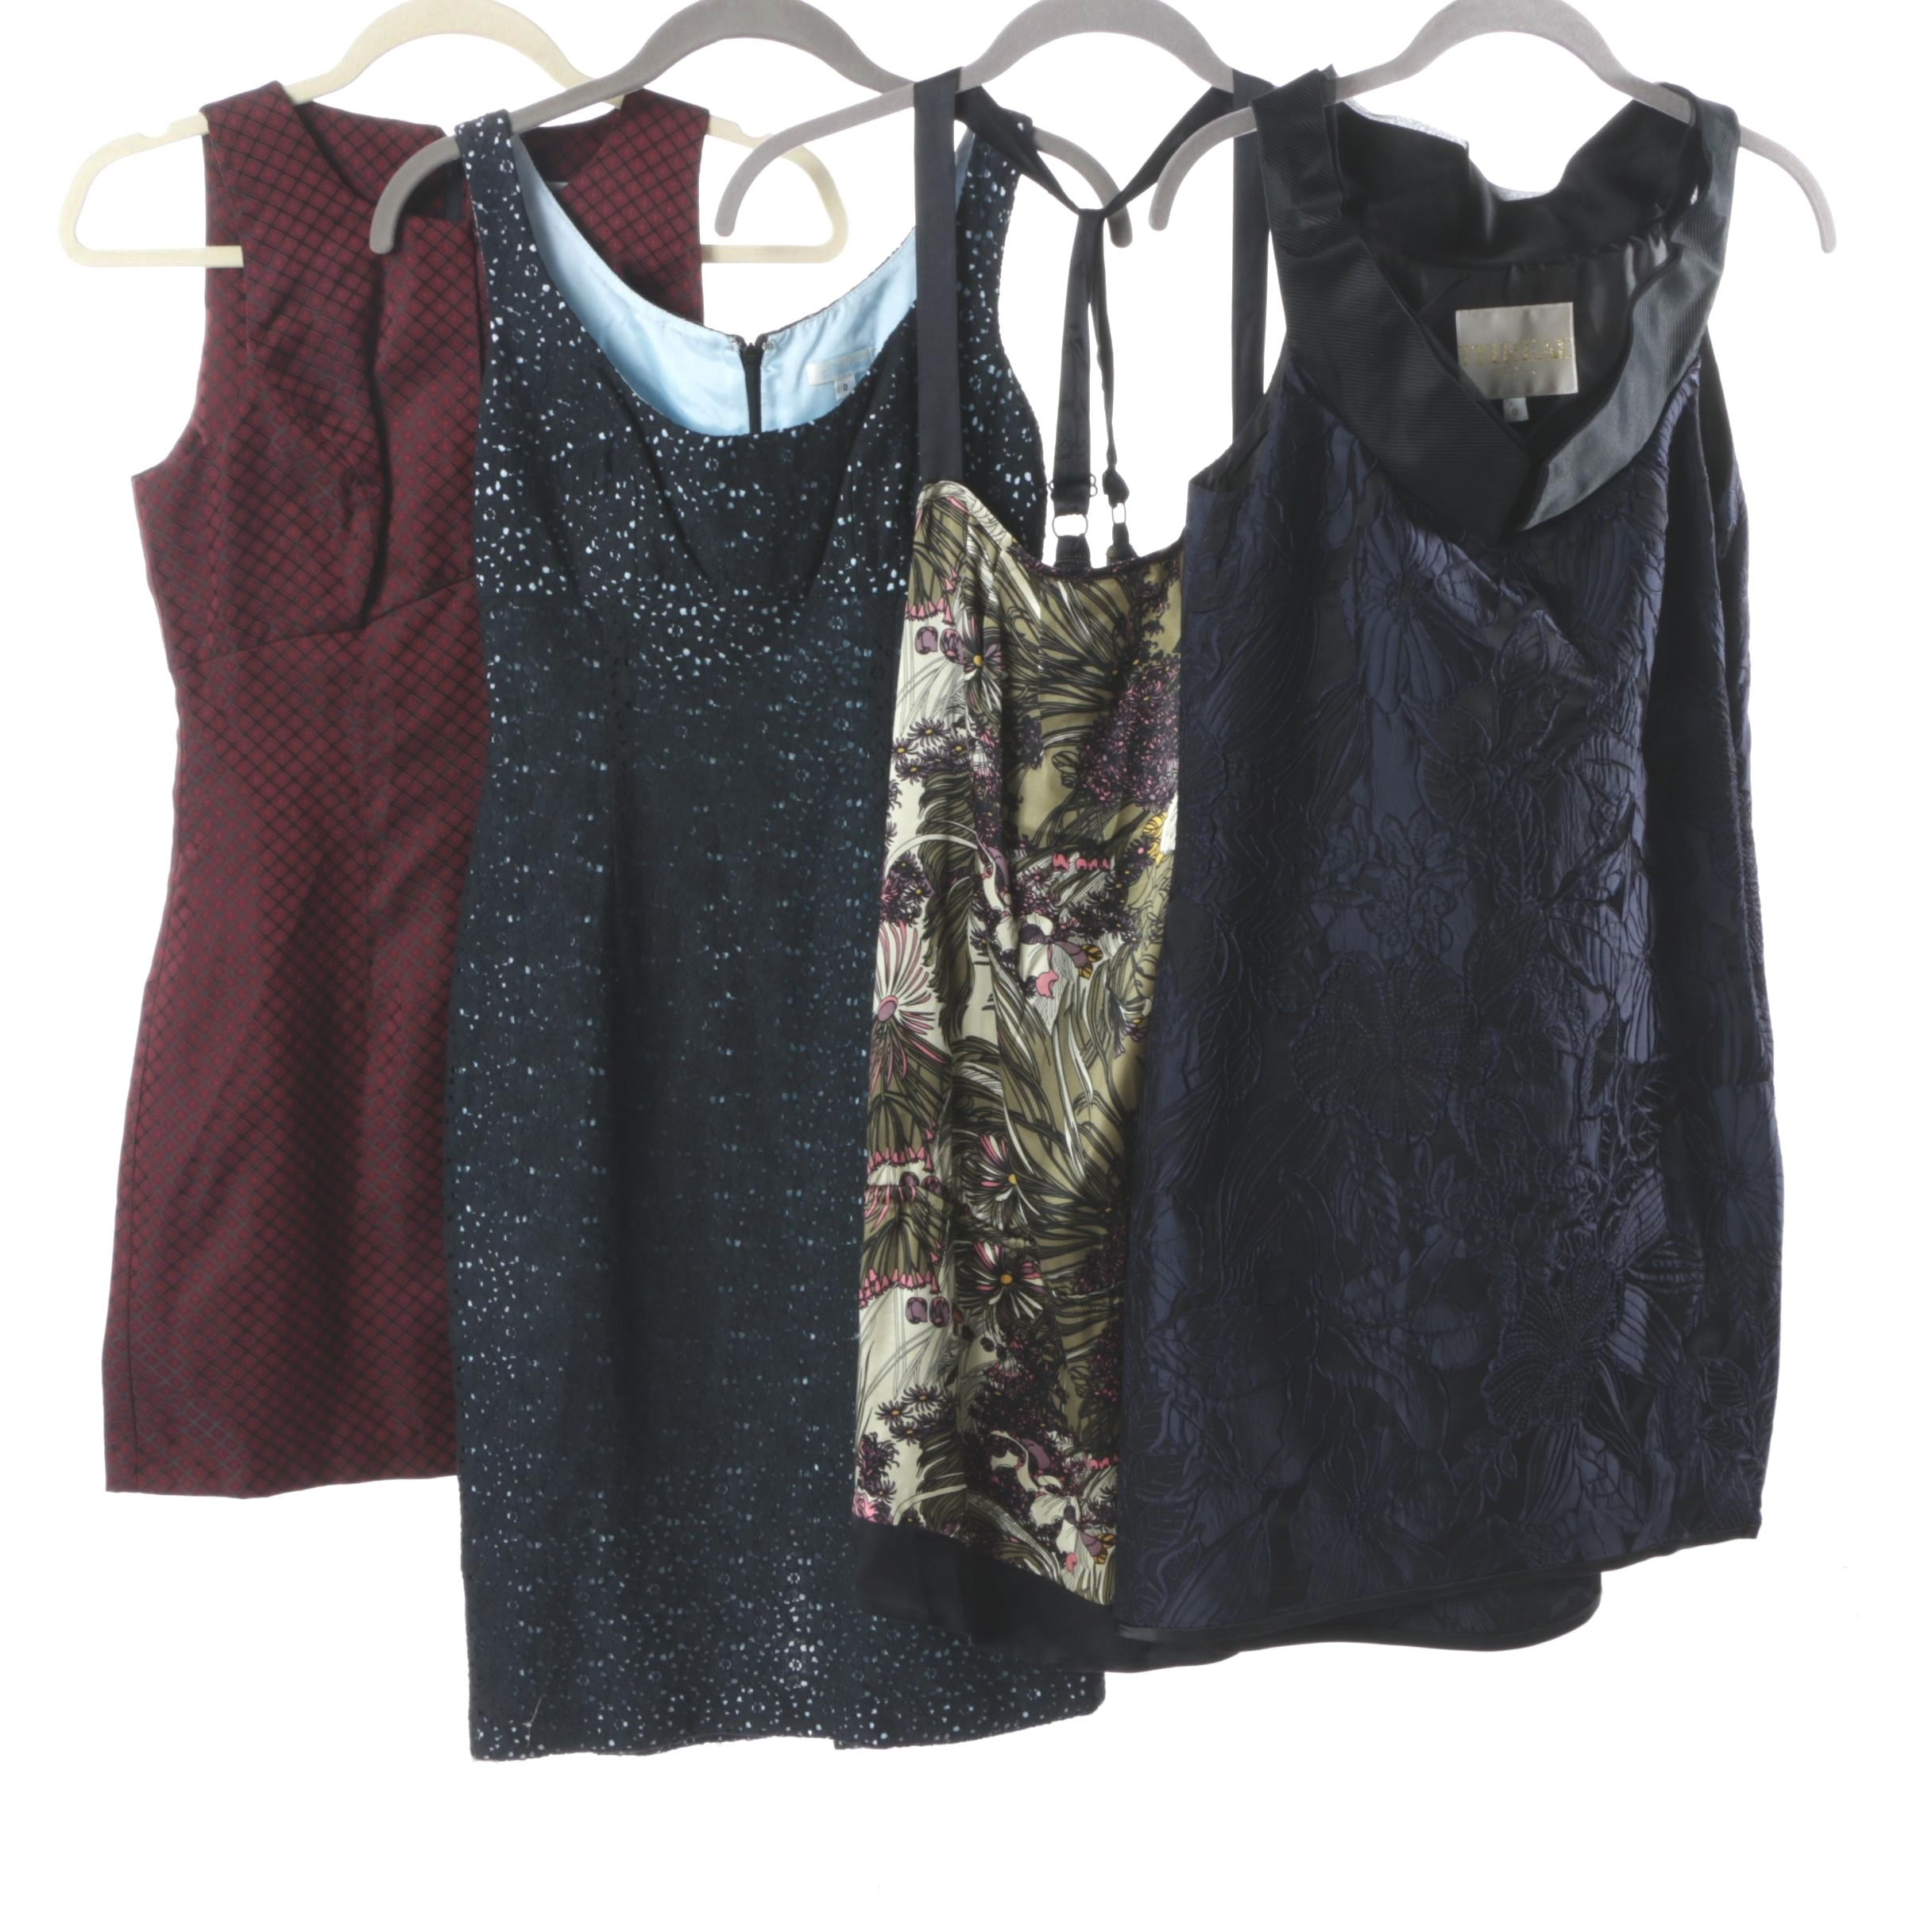 Cocktail Dresses Including XOXO